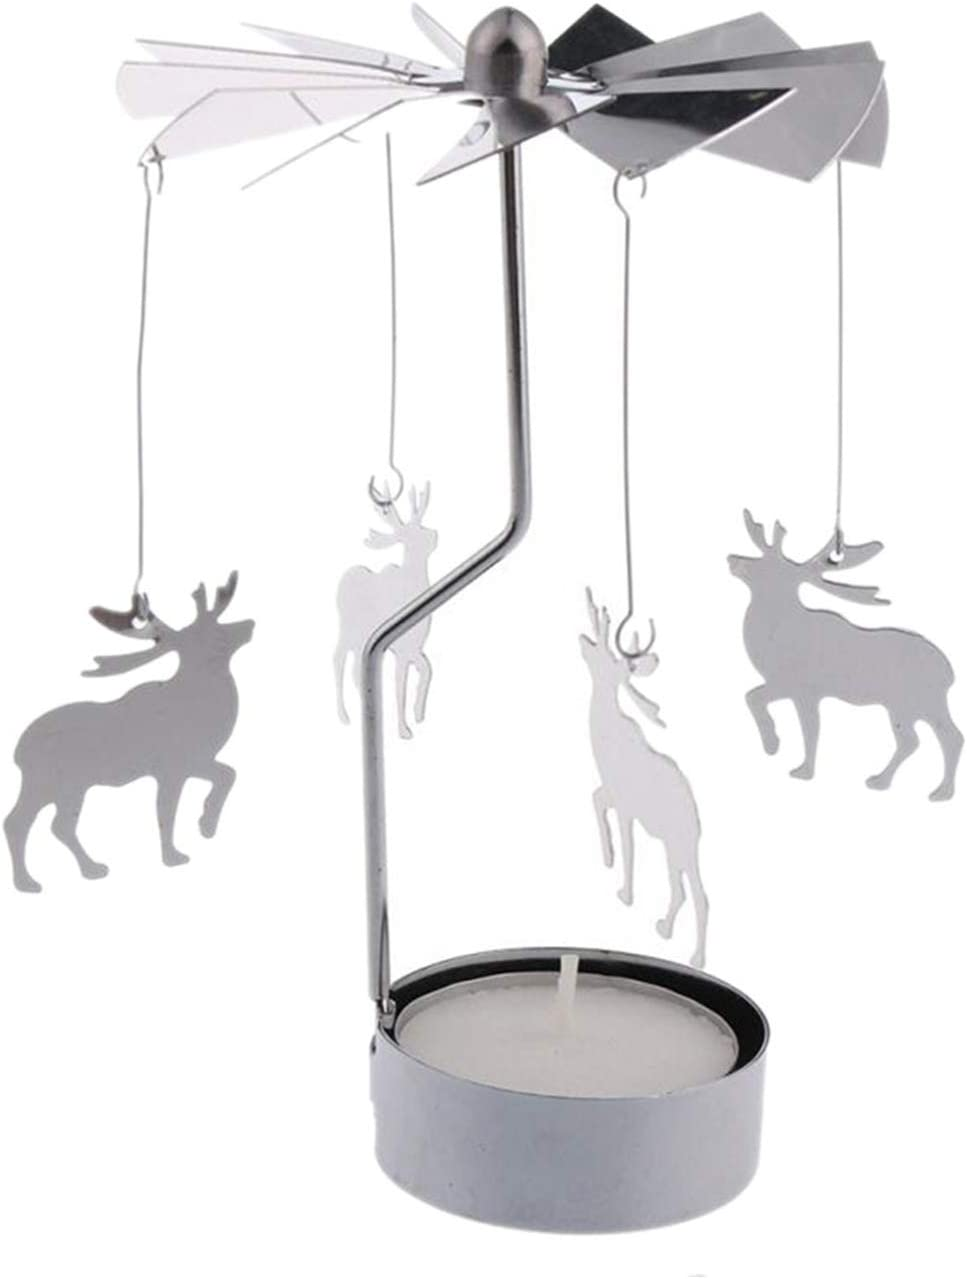 GemCave Rotary Candle Holder Save money Deer Spinning Tealigh Wholesale Silver DIY 5